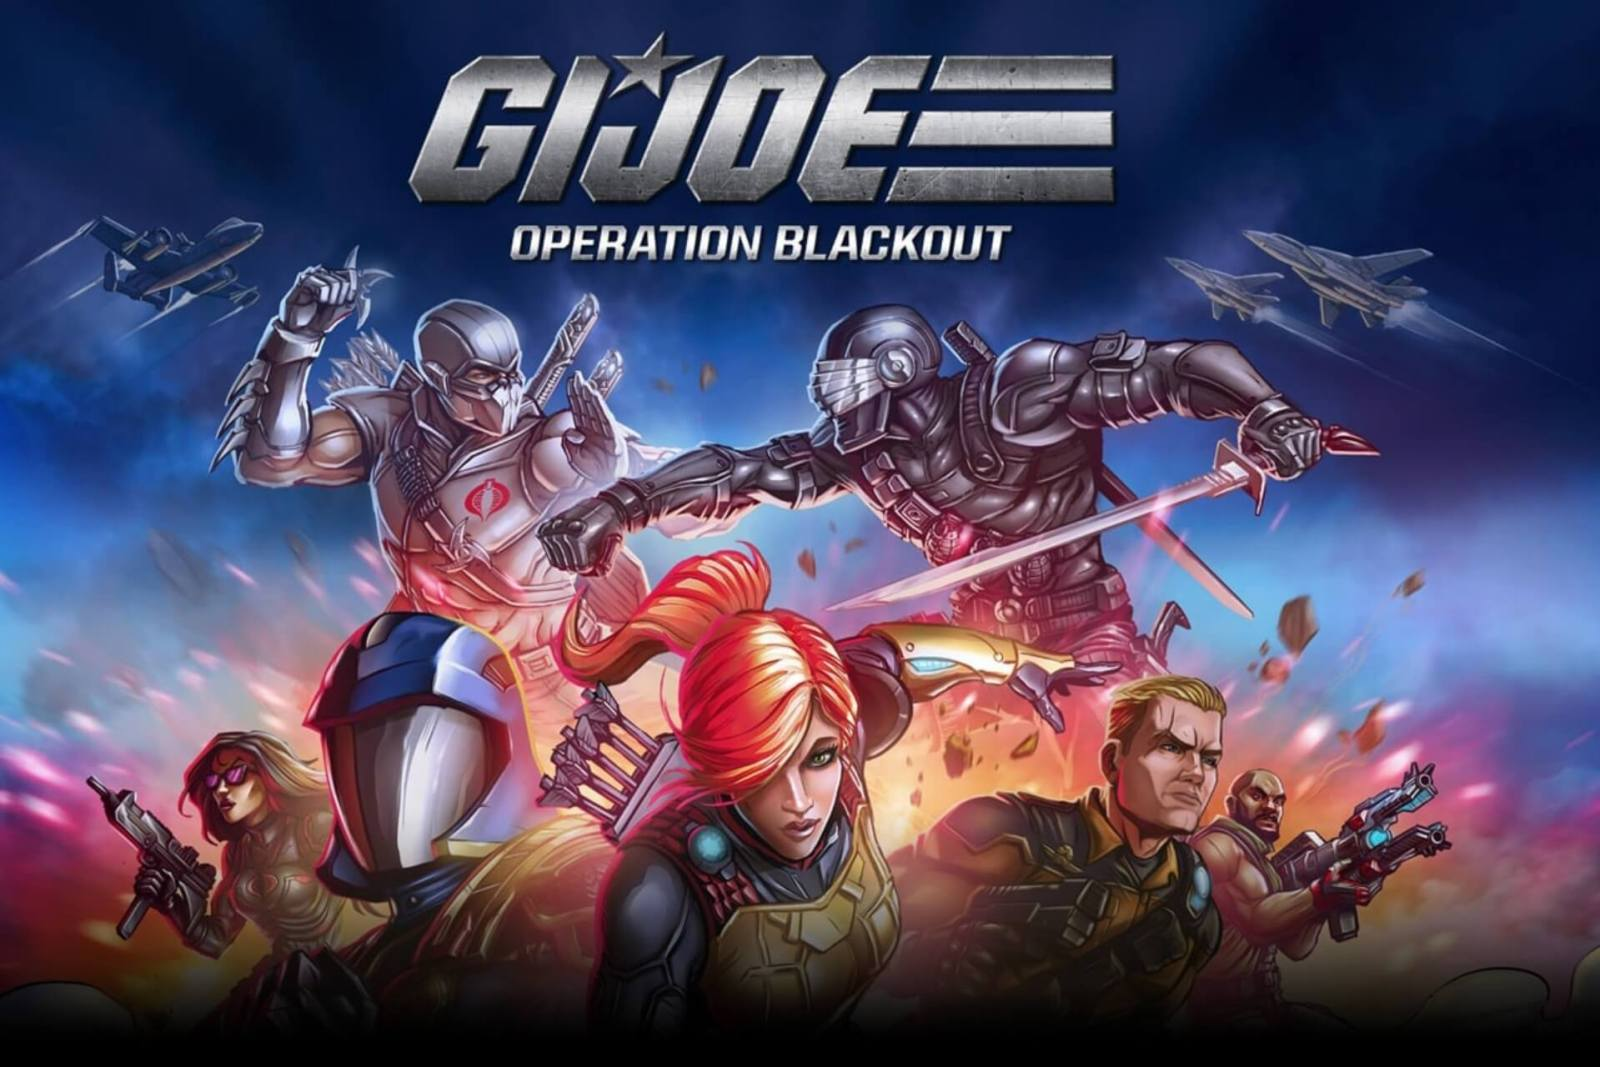 'G.I. Joe Operation Blackout' now available to Xbox One